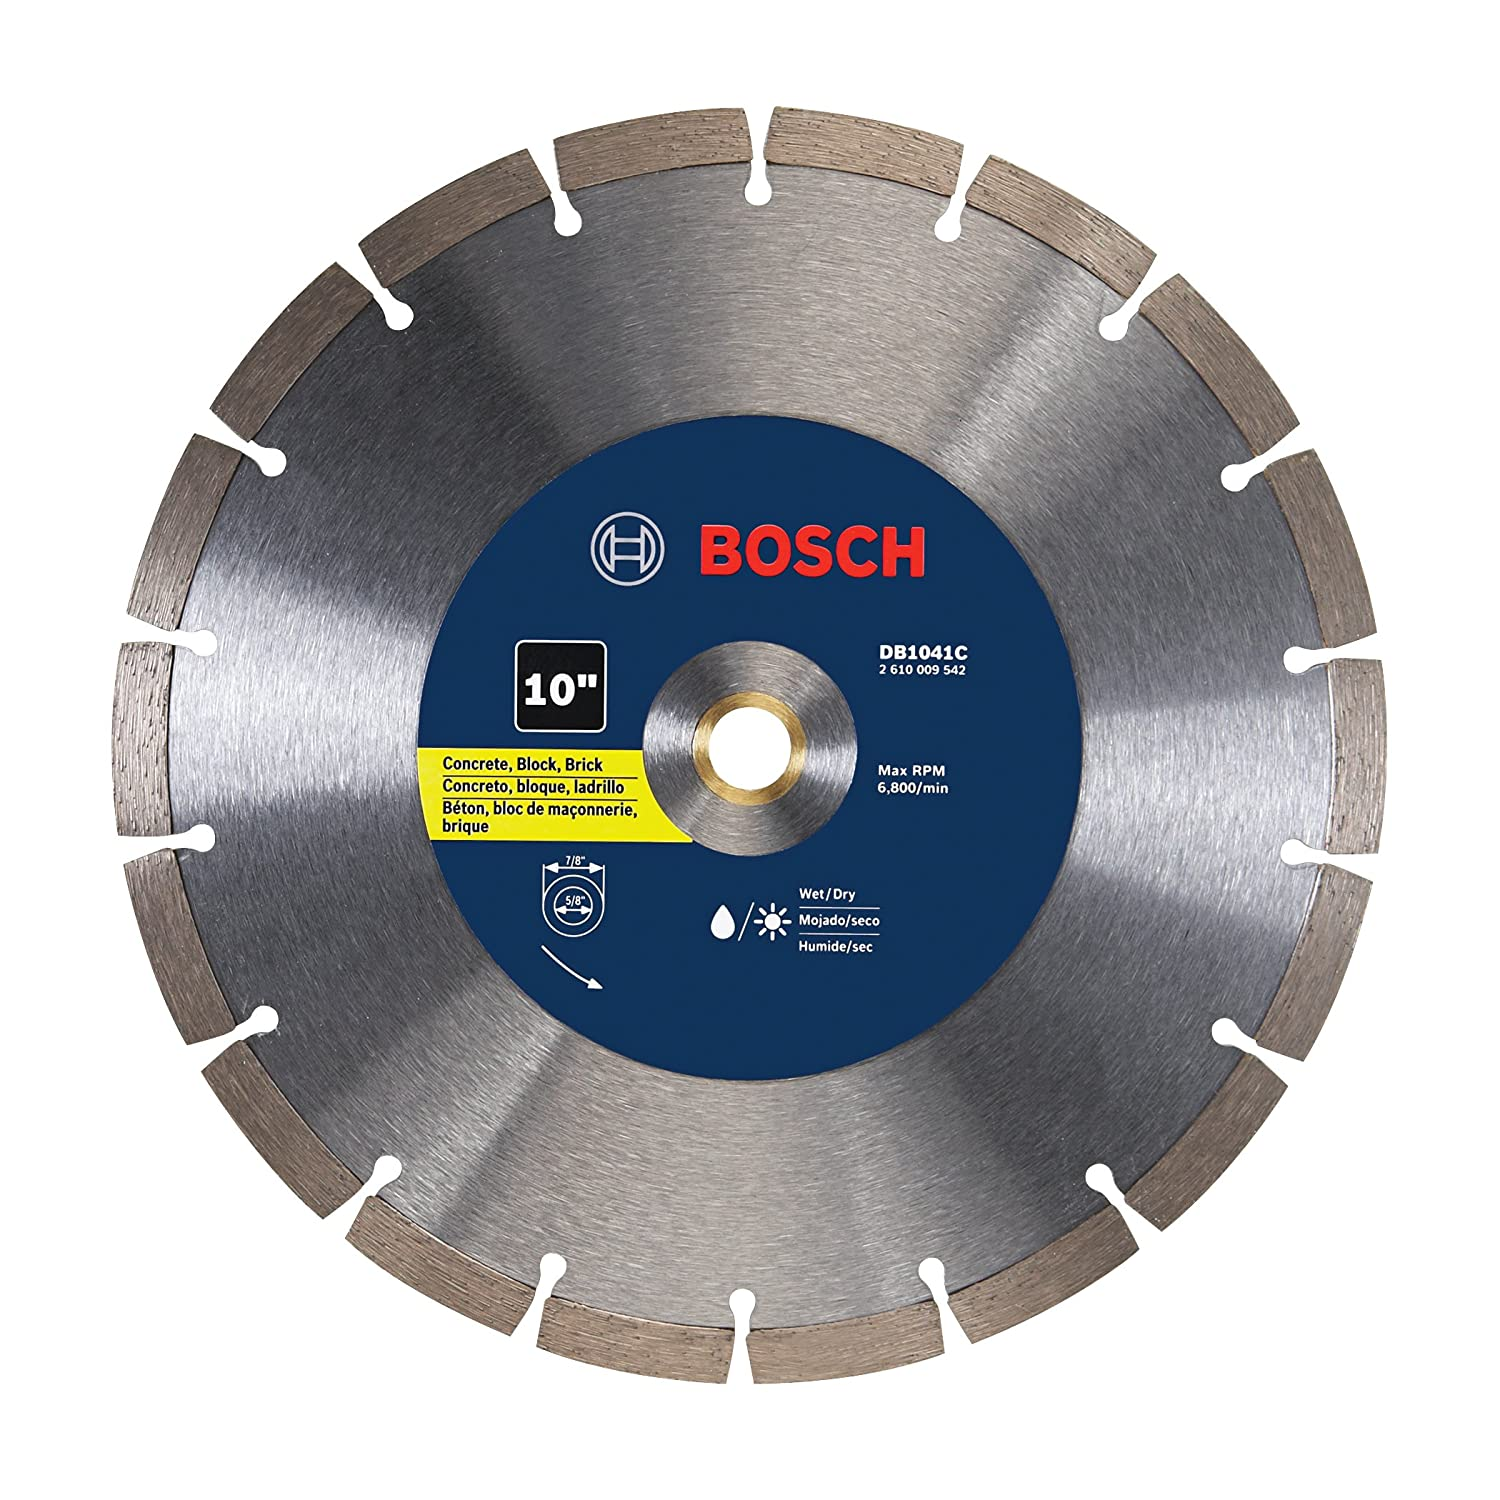 Bosch db1041c premium segmented diamond circular saw blade 10 inch bosch db1041c premium segmented diamond circular saw blade 10 inch amazon greentooth